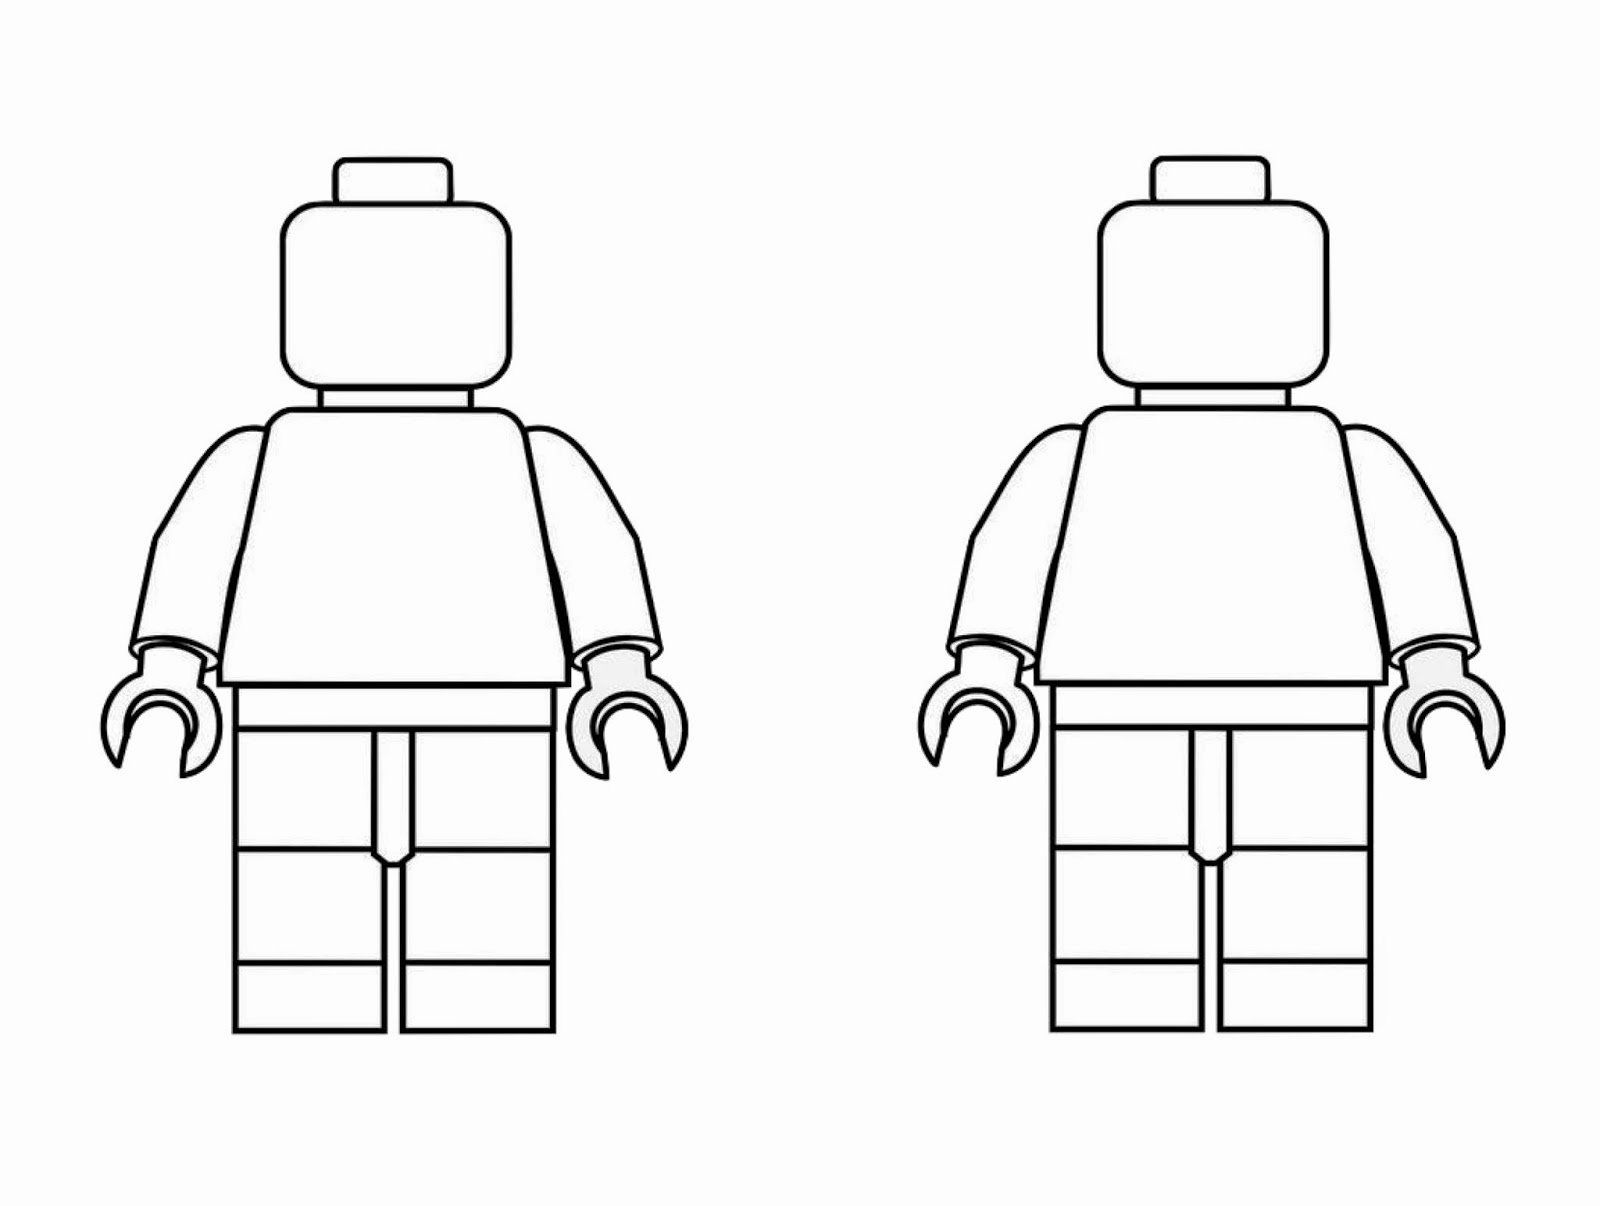 Lego Man Coloring Page Beautiful Spring Time Treats Lego Men Coloring Page In 2020 Lego Coloring Pages Lego Man Lego Coloring